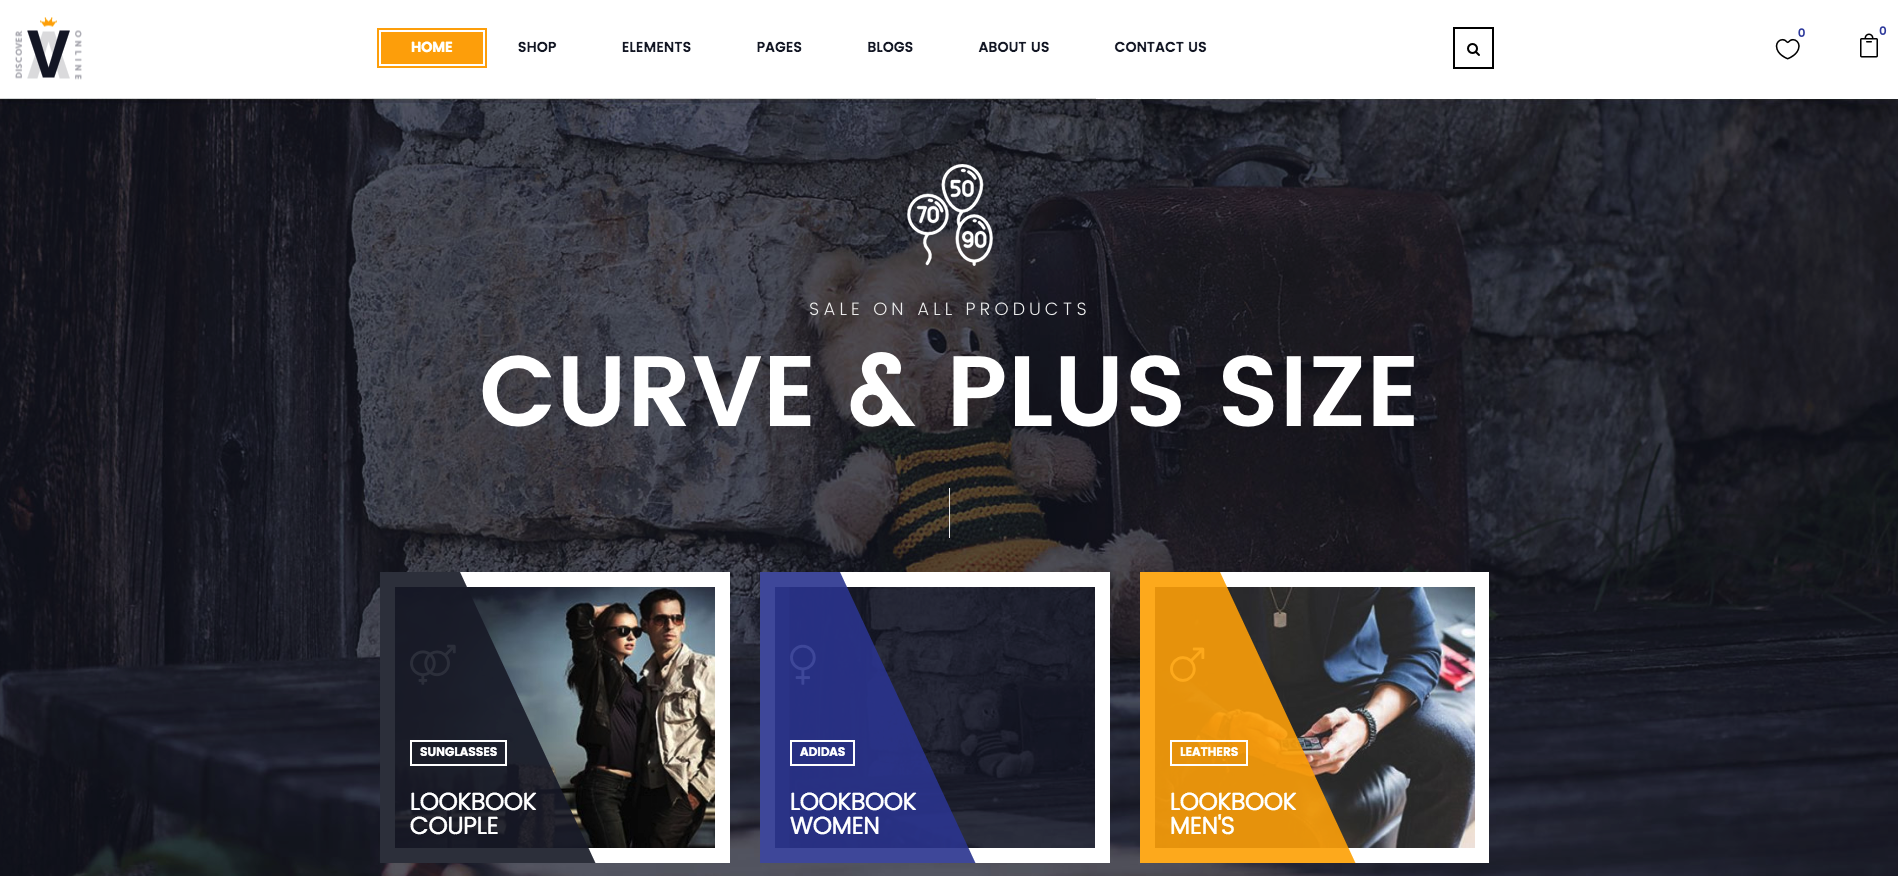 Venus – The VIP Shop WordPress Theme Review